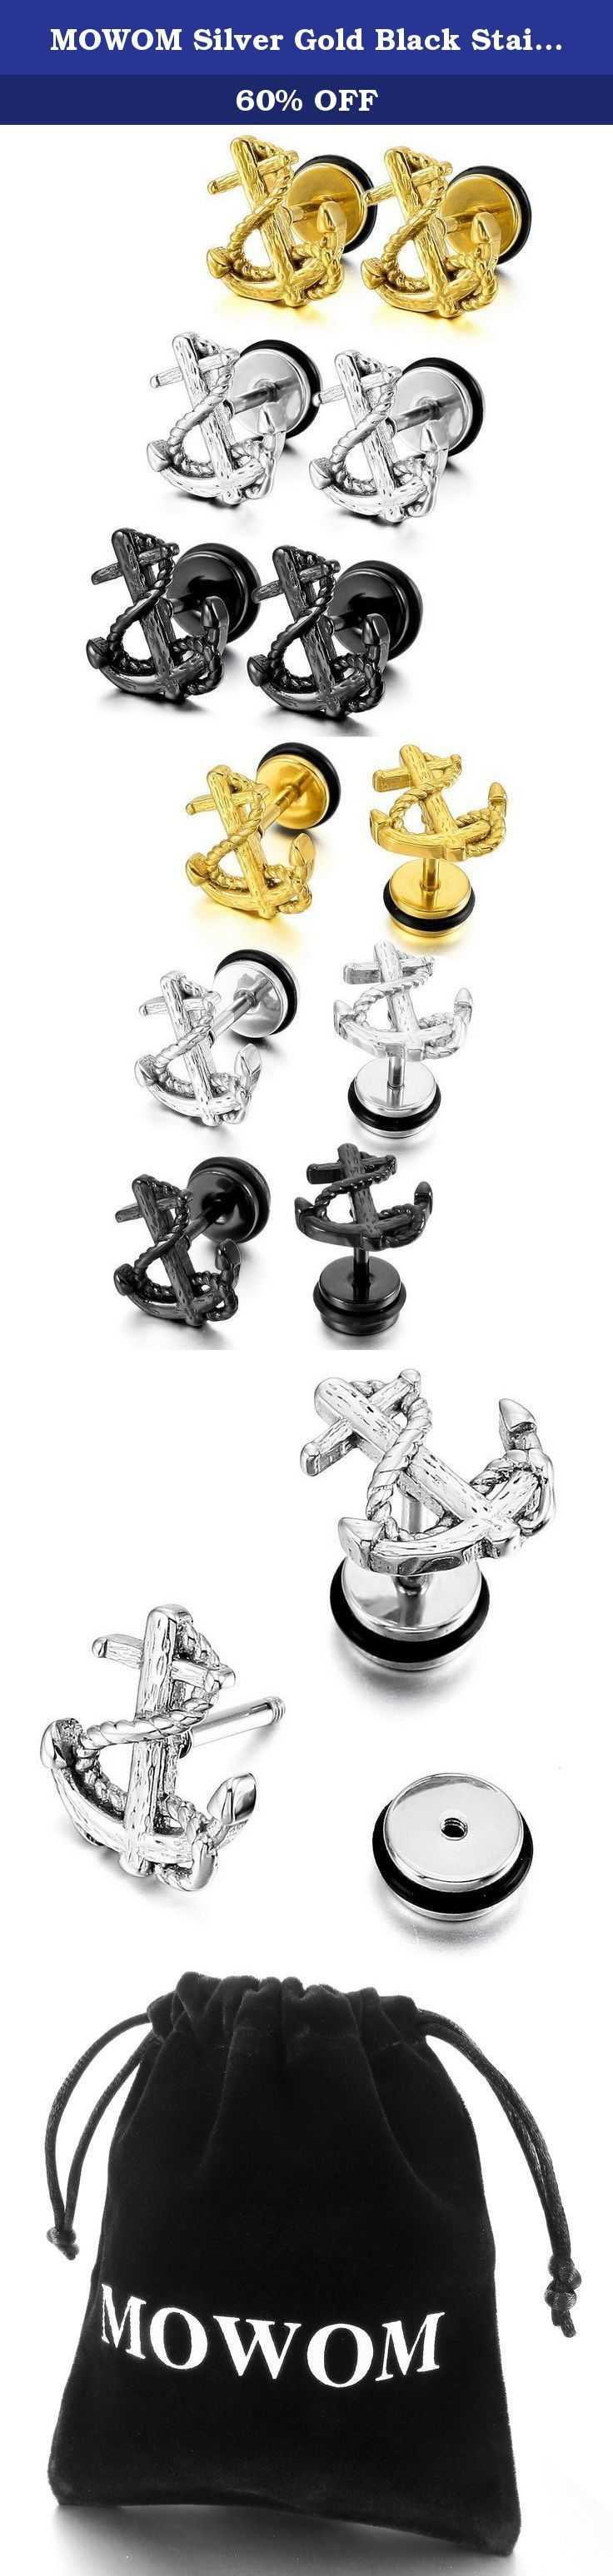 MOWOM Silver Gold Black Stainless Steel Stud Earring Anchor ( 3 Pairs ). Silver Gold Black Stainless Steel Stud Earring Anchor ( 3 Pairs ).